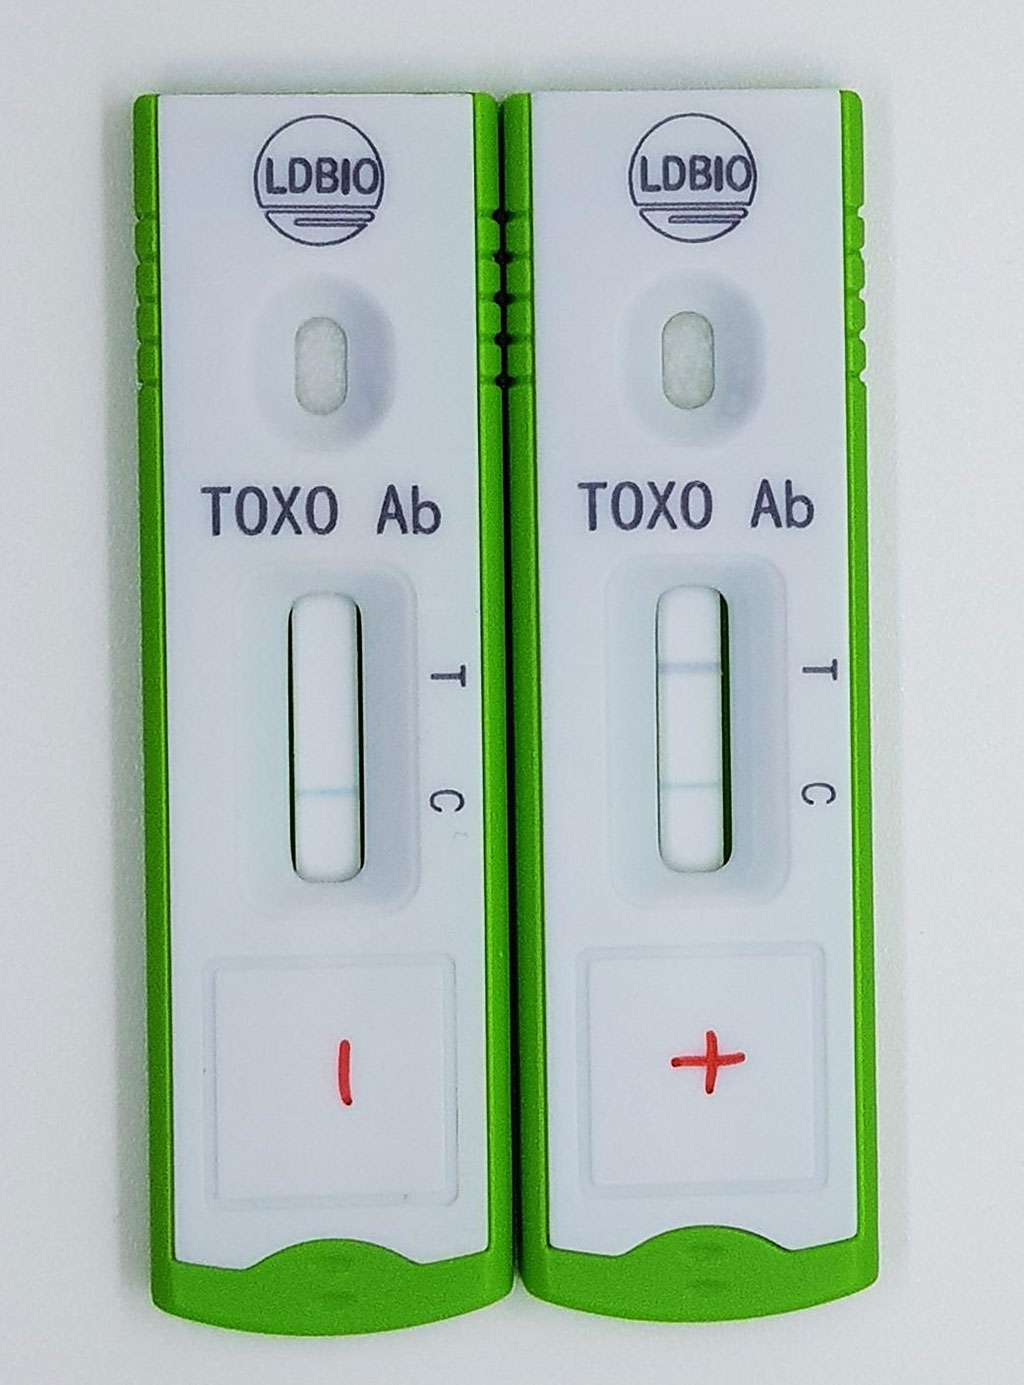 Image: TOXOPLASMA ICT IgG-IgM is a unitary qualitative rapid test based on the immune chromatography technology (lateral flow), allowing the simultaneous detection of both IgG and IgM class anti-Toxoplasma antibodies in human sera (Photo courtesy of LDBIO DIAGNOSTICS)